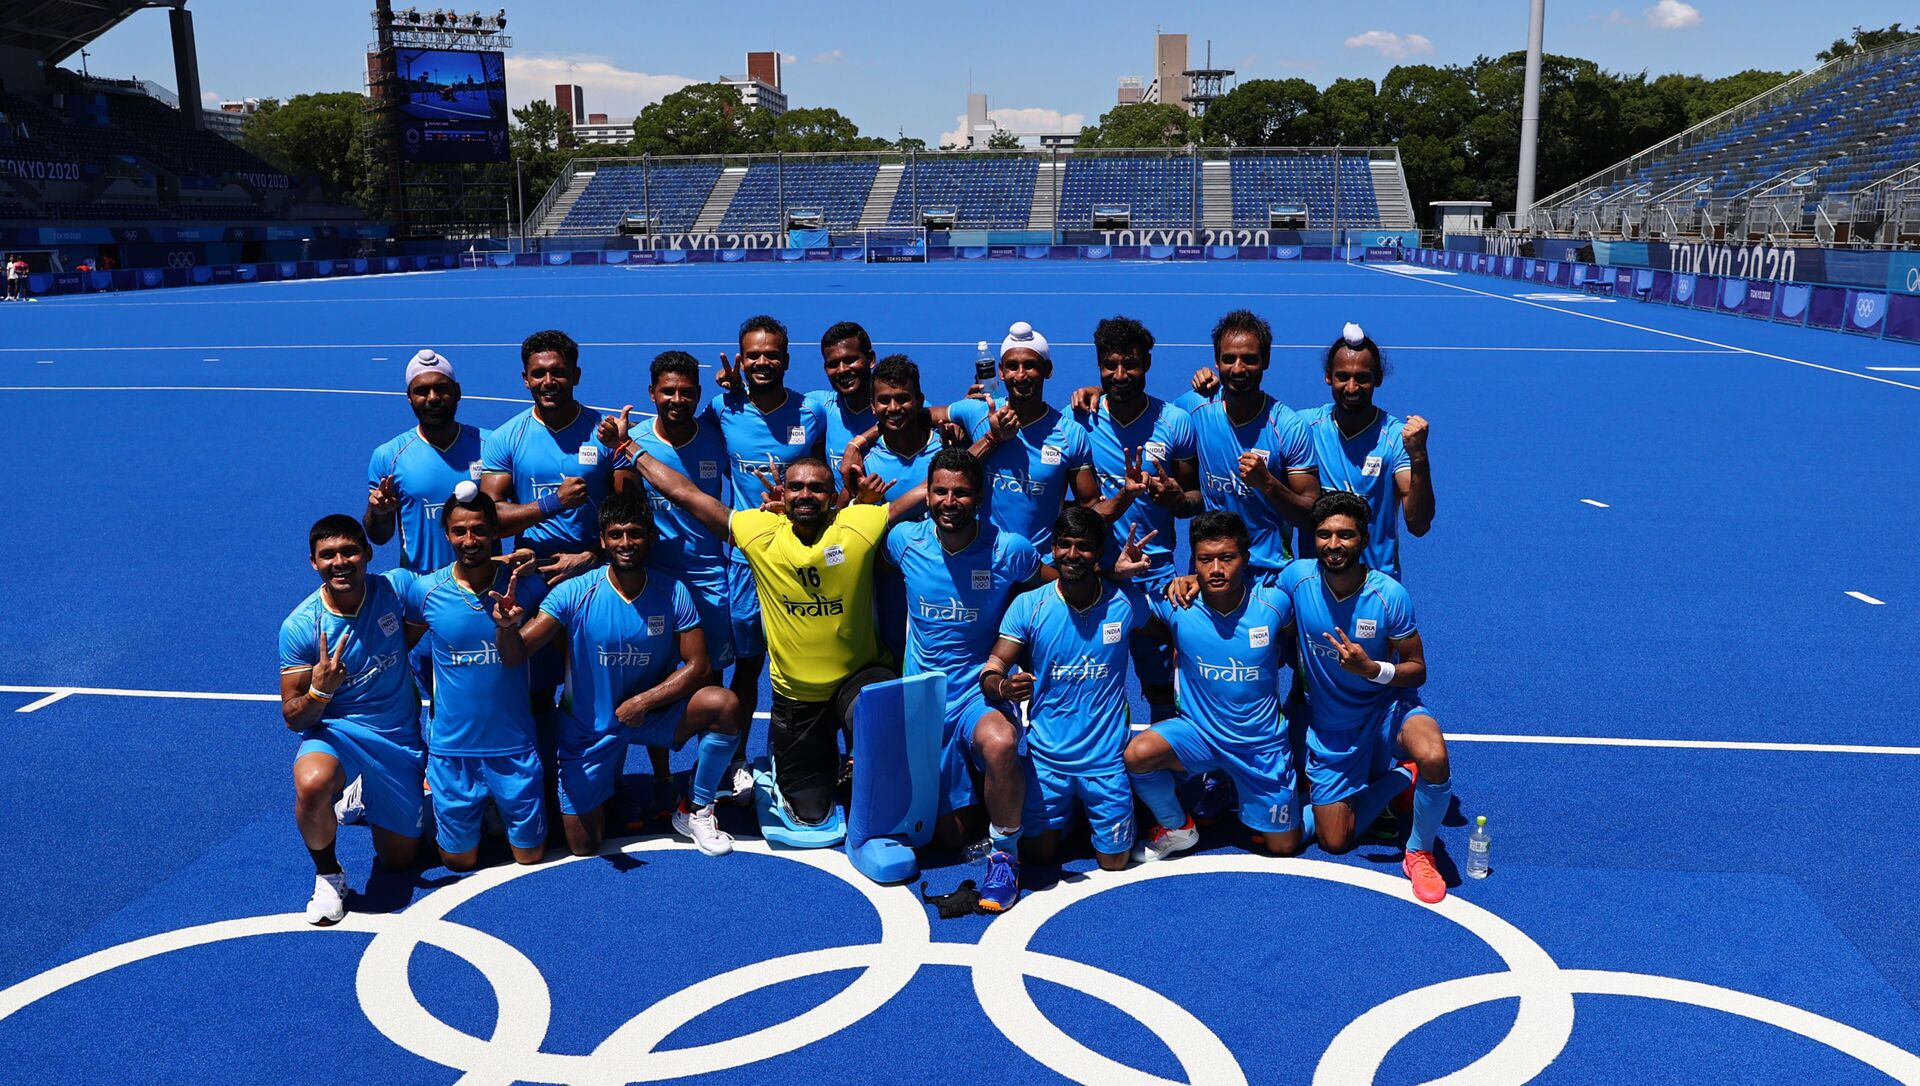 Tokyo 2020 Olympics - Hockey - Men - Bronze medal match - Germany v India - Oi Hockey Stadium, Tokyo, Japan - August 5, 2021. Players of India pose for a group photo after winning the match for bronze.  - Sputnik International, 1920, 05.08.2021